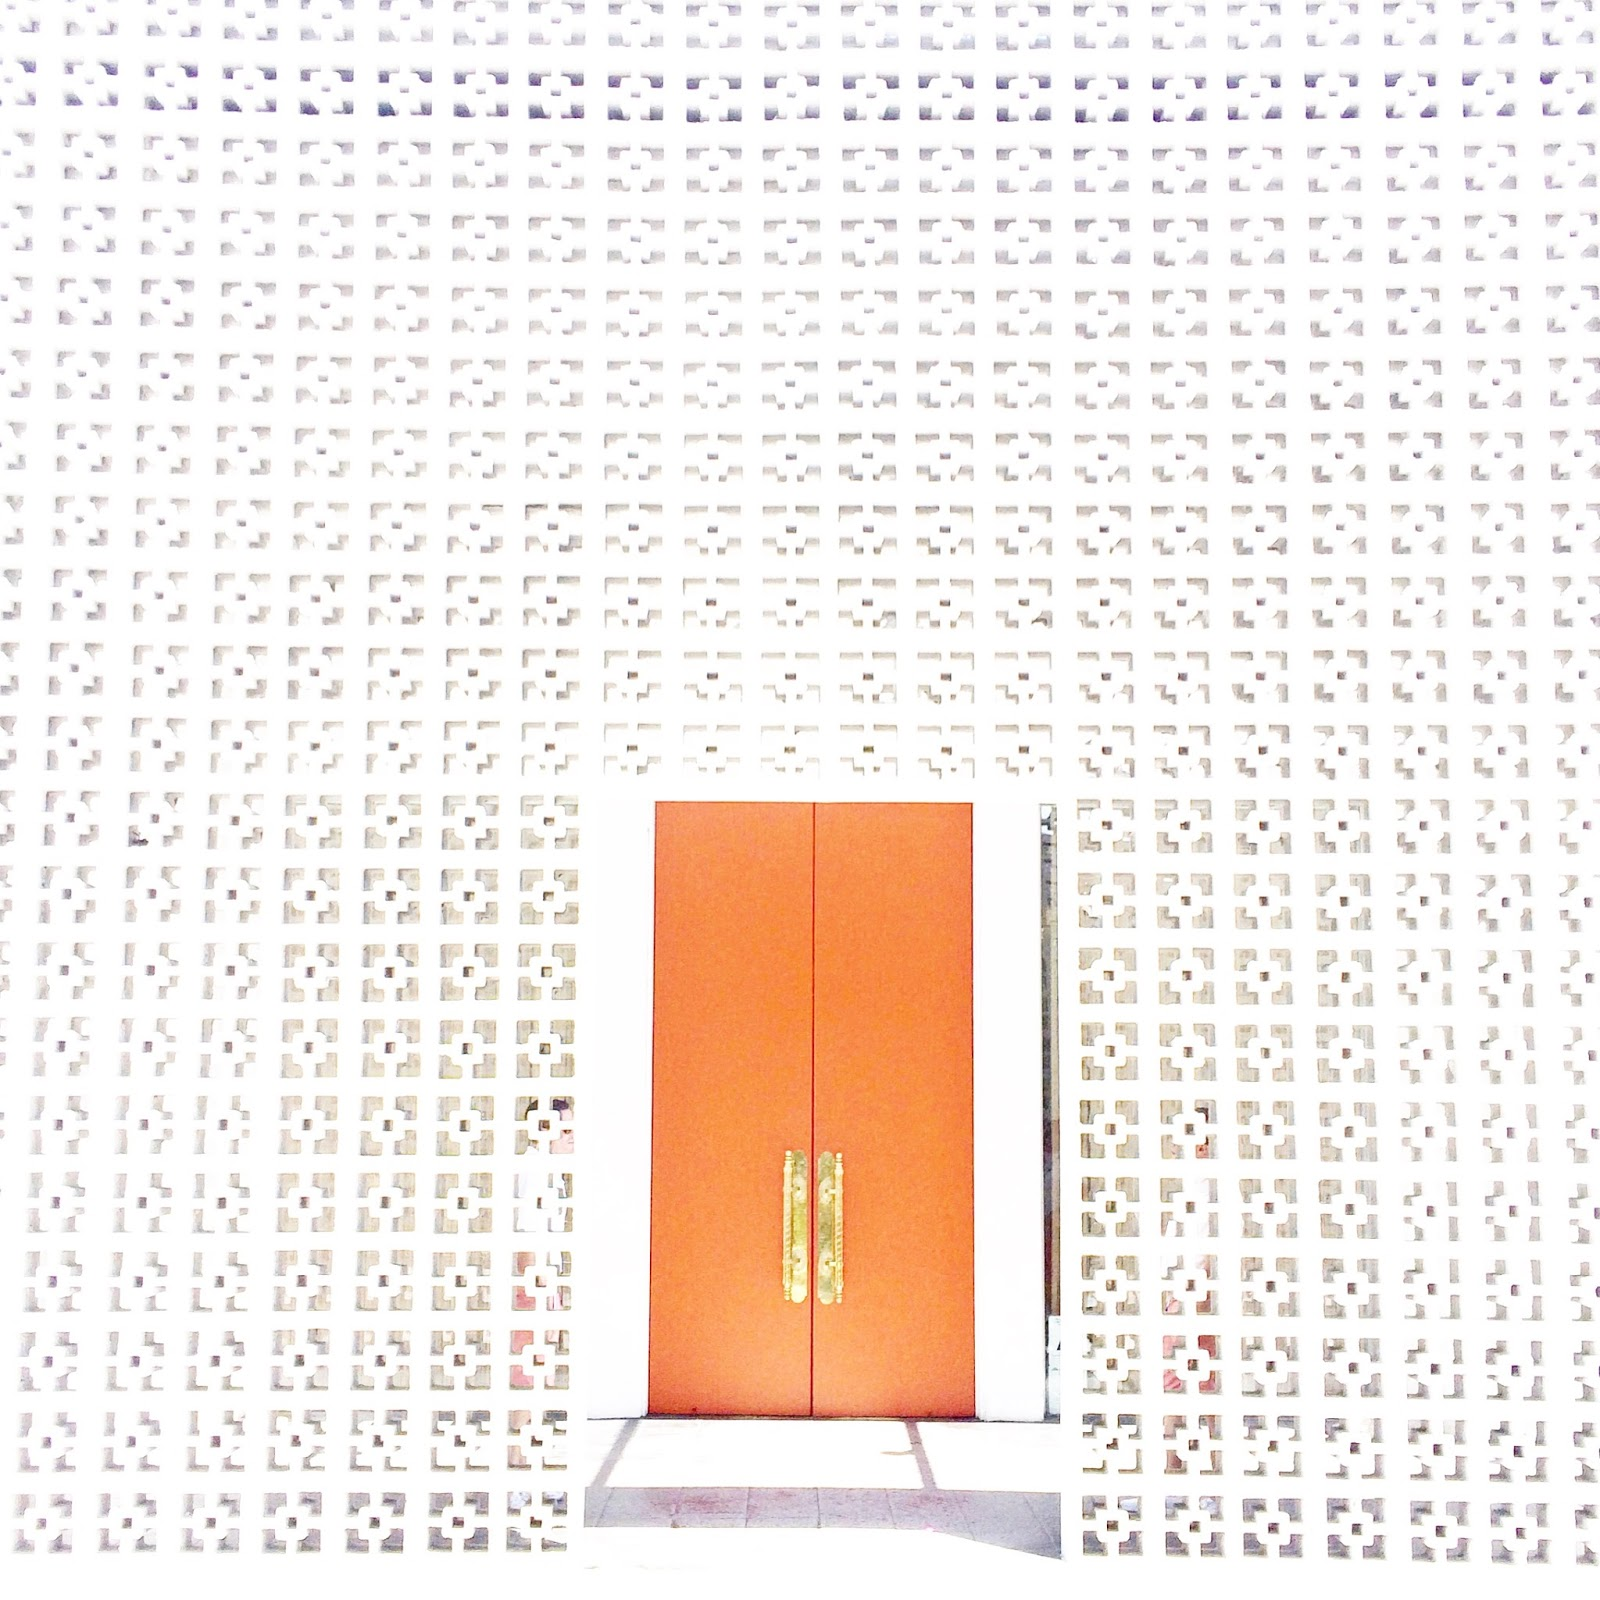 That Pink Door The Parker \u0026 Must See\u0027s in Palm Springs | Jess Loves This Life  sc 1 st  Jess Loves This Life & That Pink Door The Parker \u0026 Must See\u0027s in Palm Springs | Jess ...